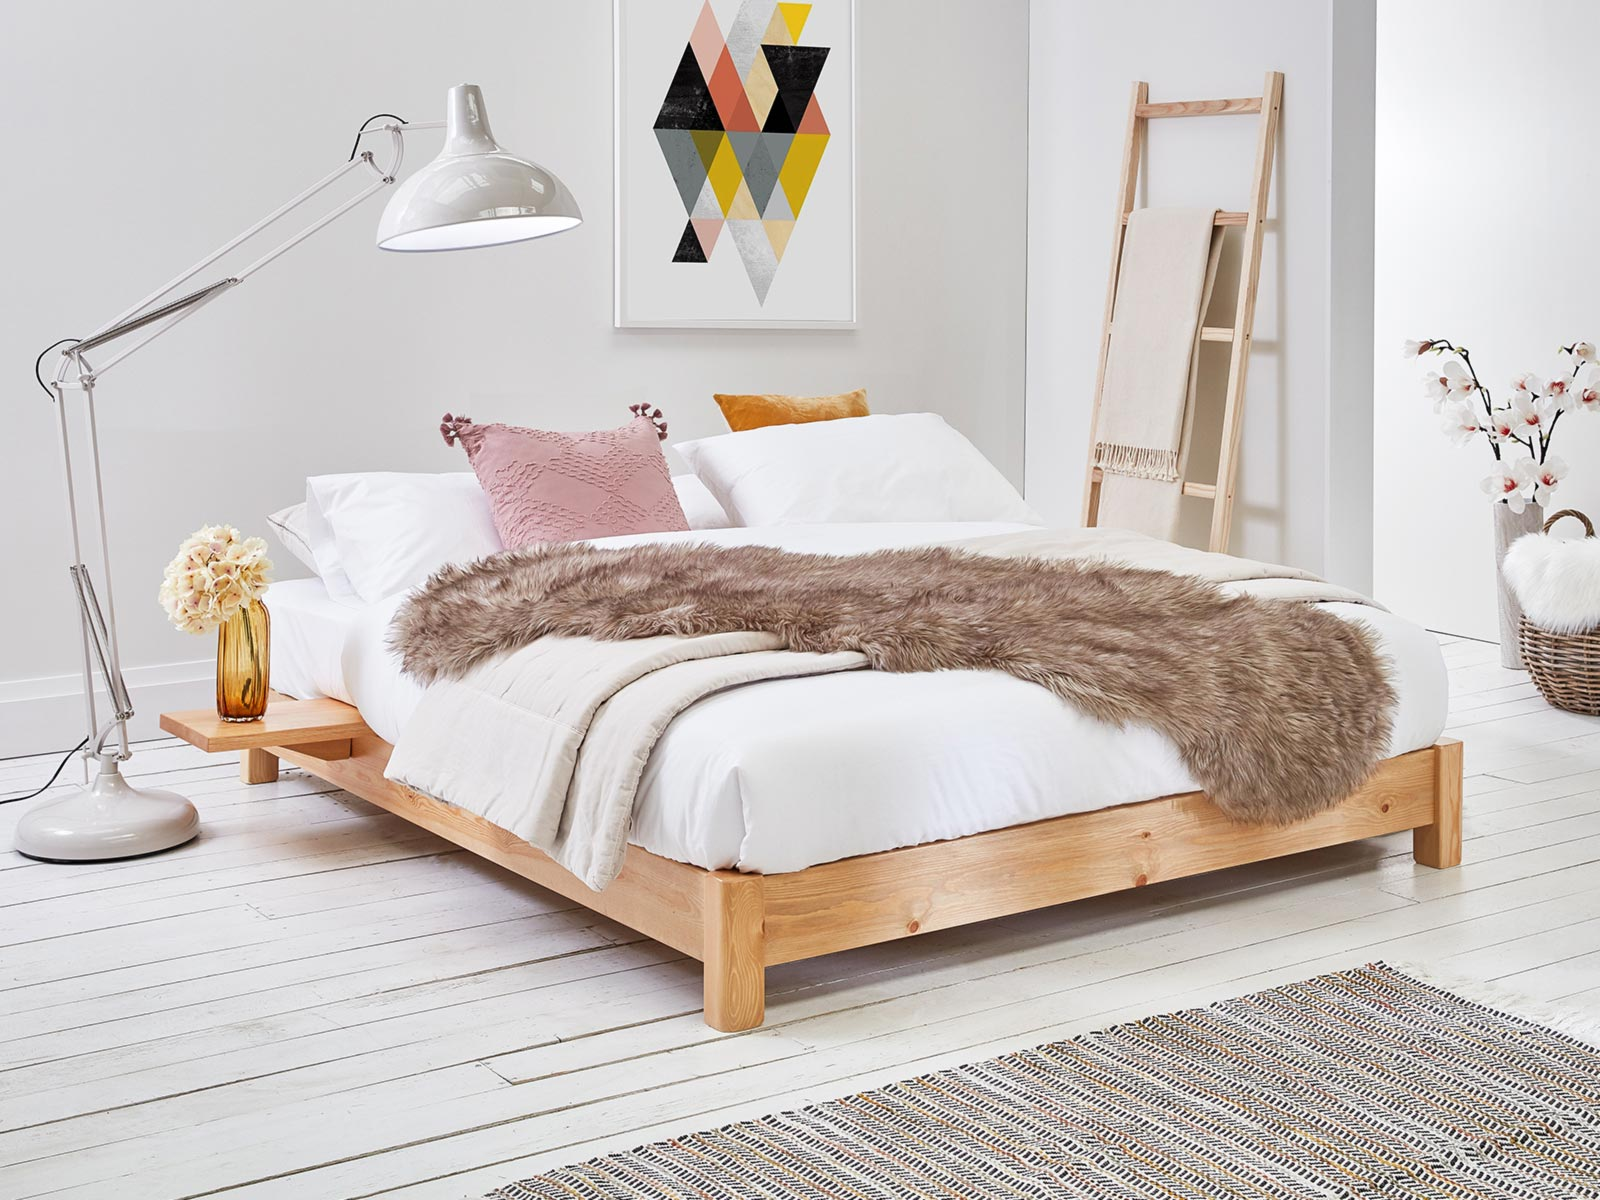 Picture of: Low Platform Bed Space Saver Get Laid Beds